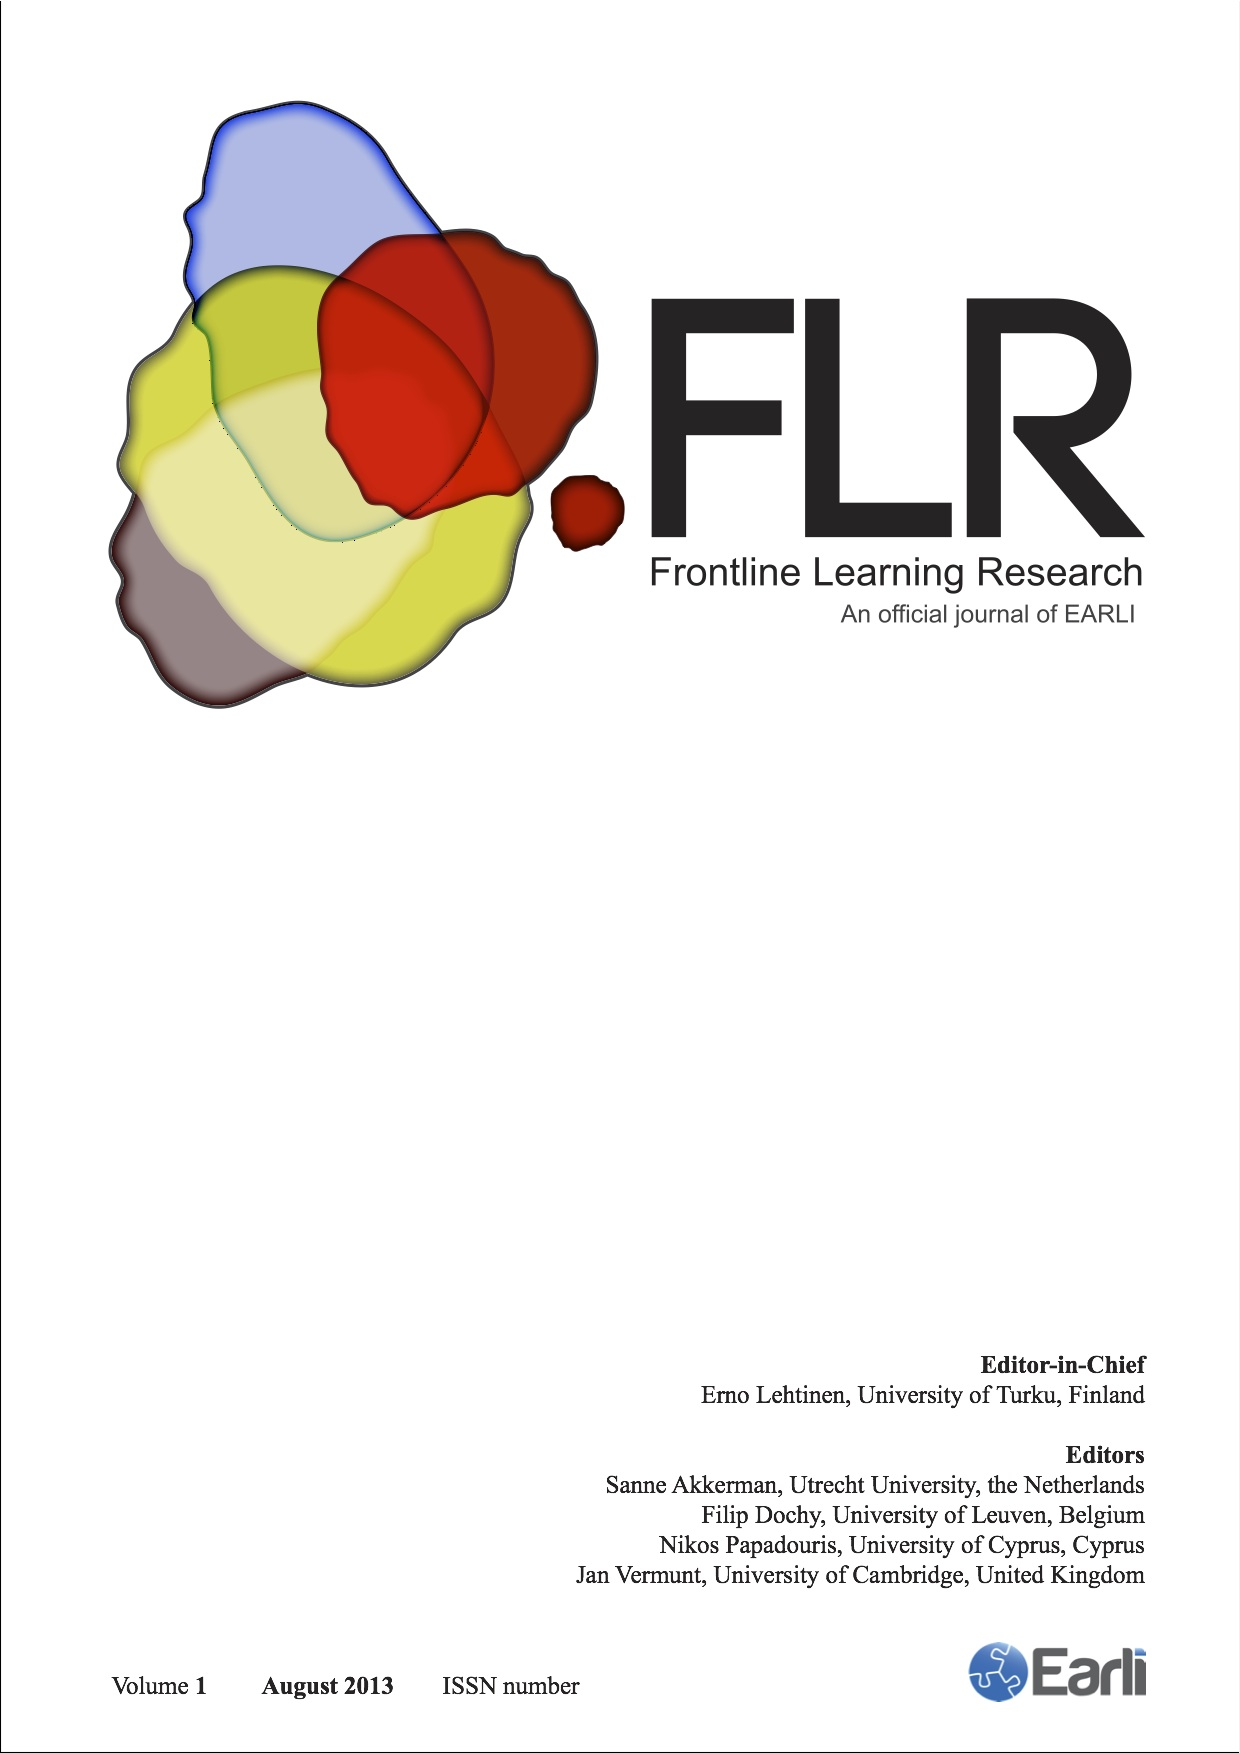 FLR Cover Volume 1 Issue 1